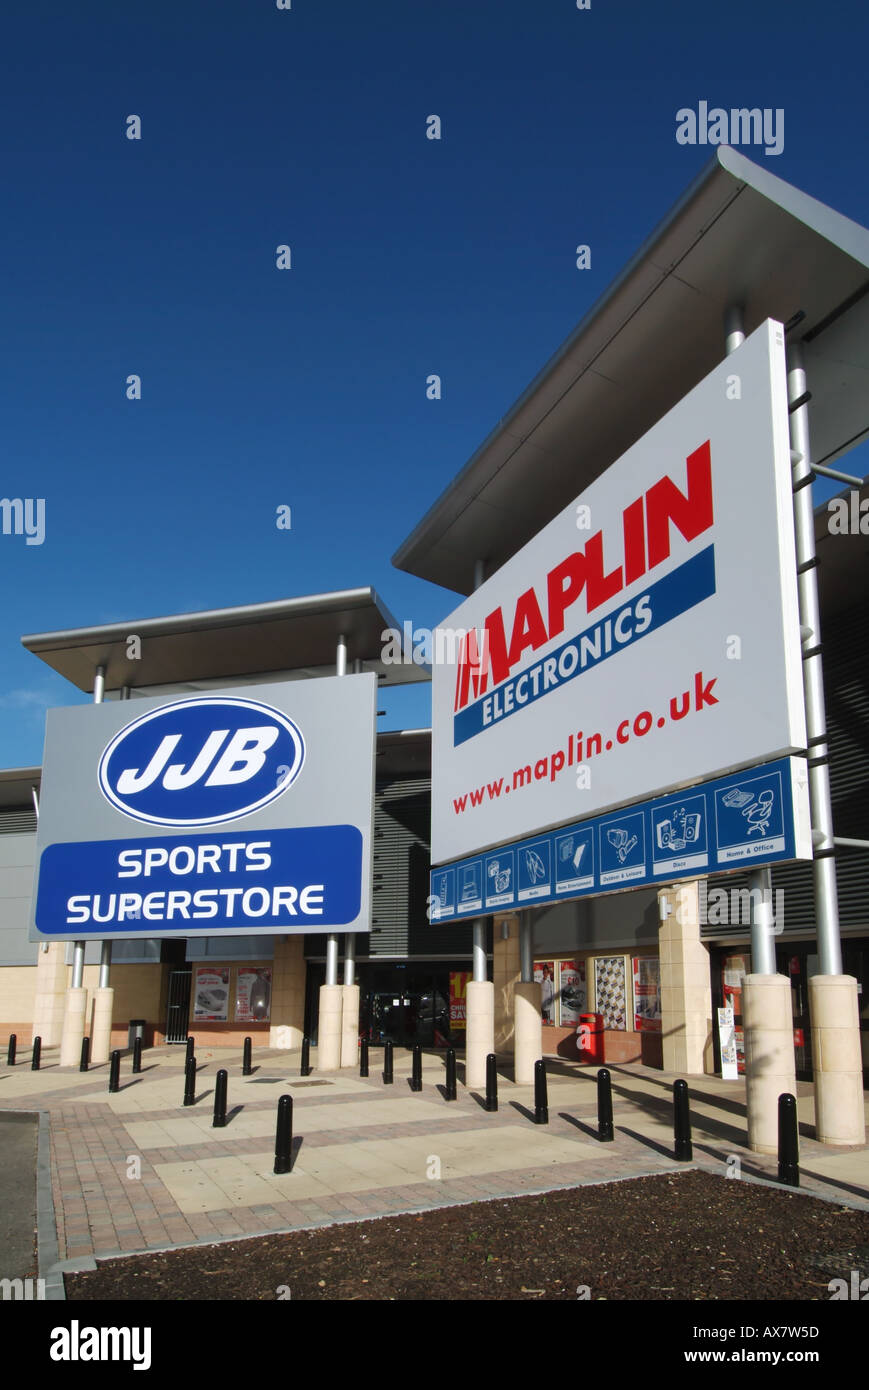 West Thurrock Lakeside retail park Maplin Electronics store sign incorporating web site address JJB sports superstore beyond - Stock Image